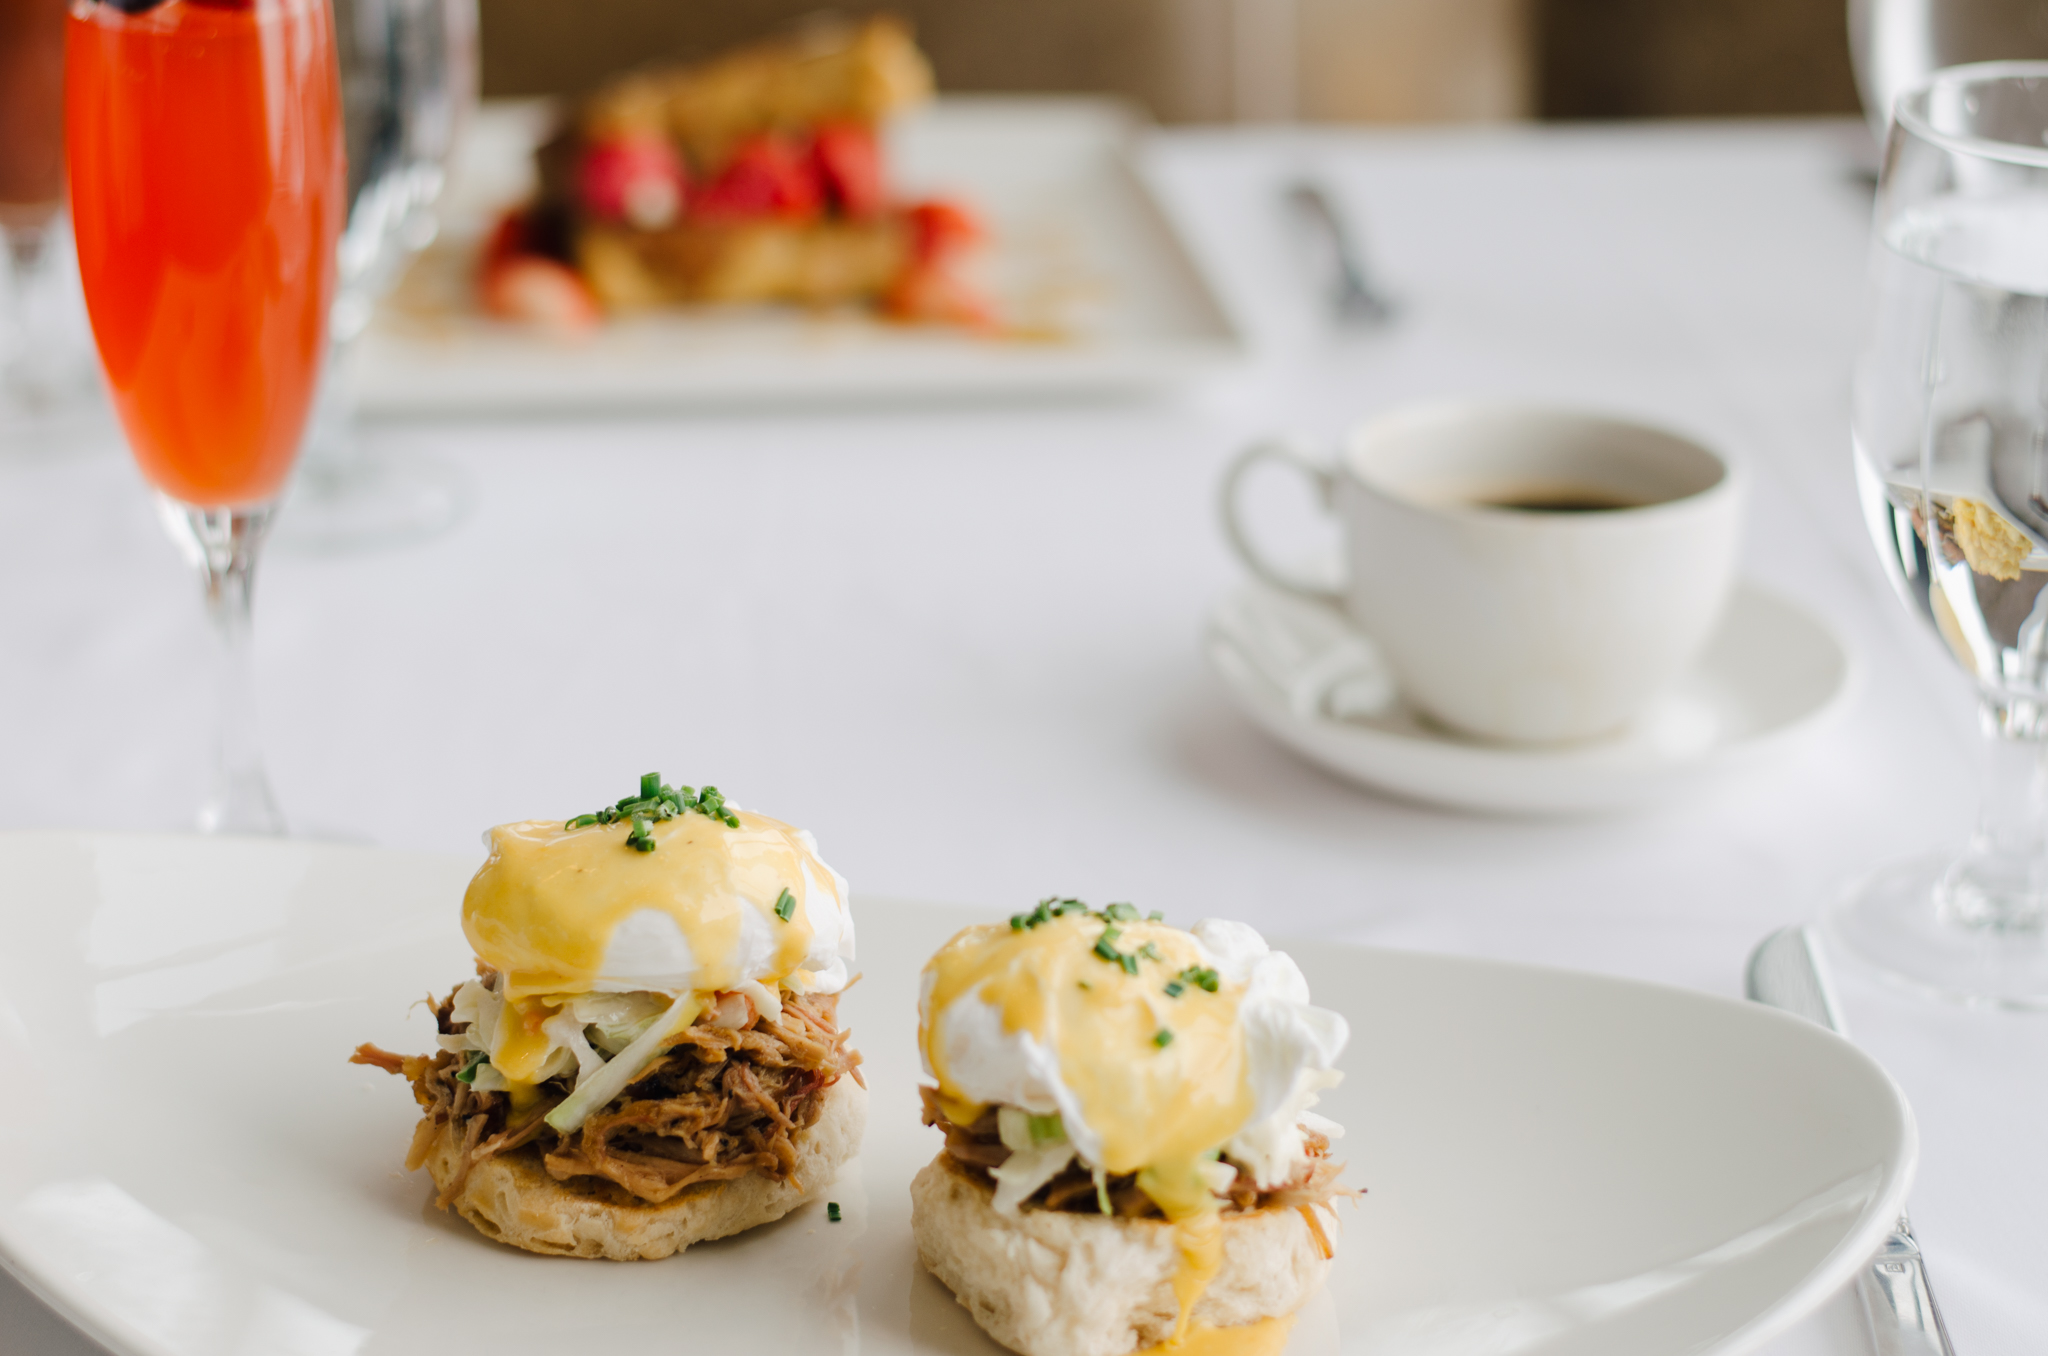 Have brunch at the Sun Dial Room in the Westin Peachtree Plaza Hotel and enjoy the magnificent view.